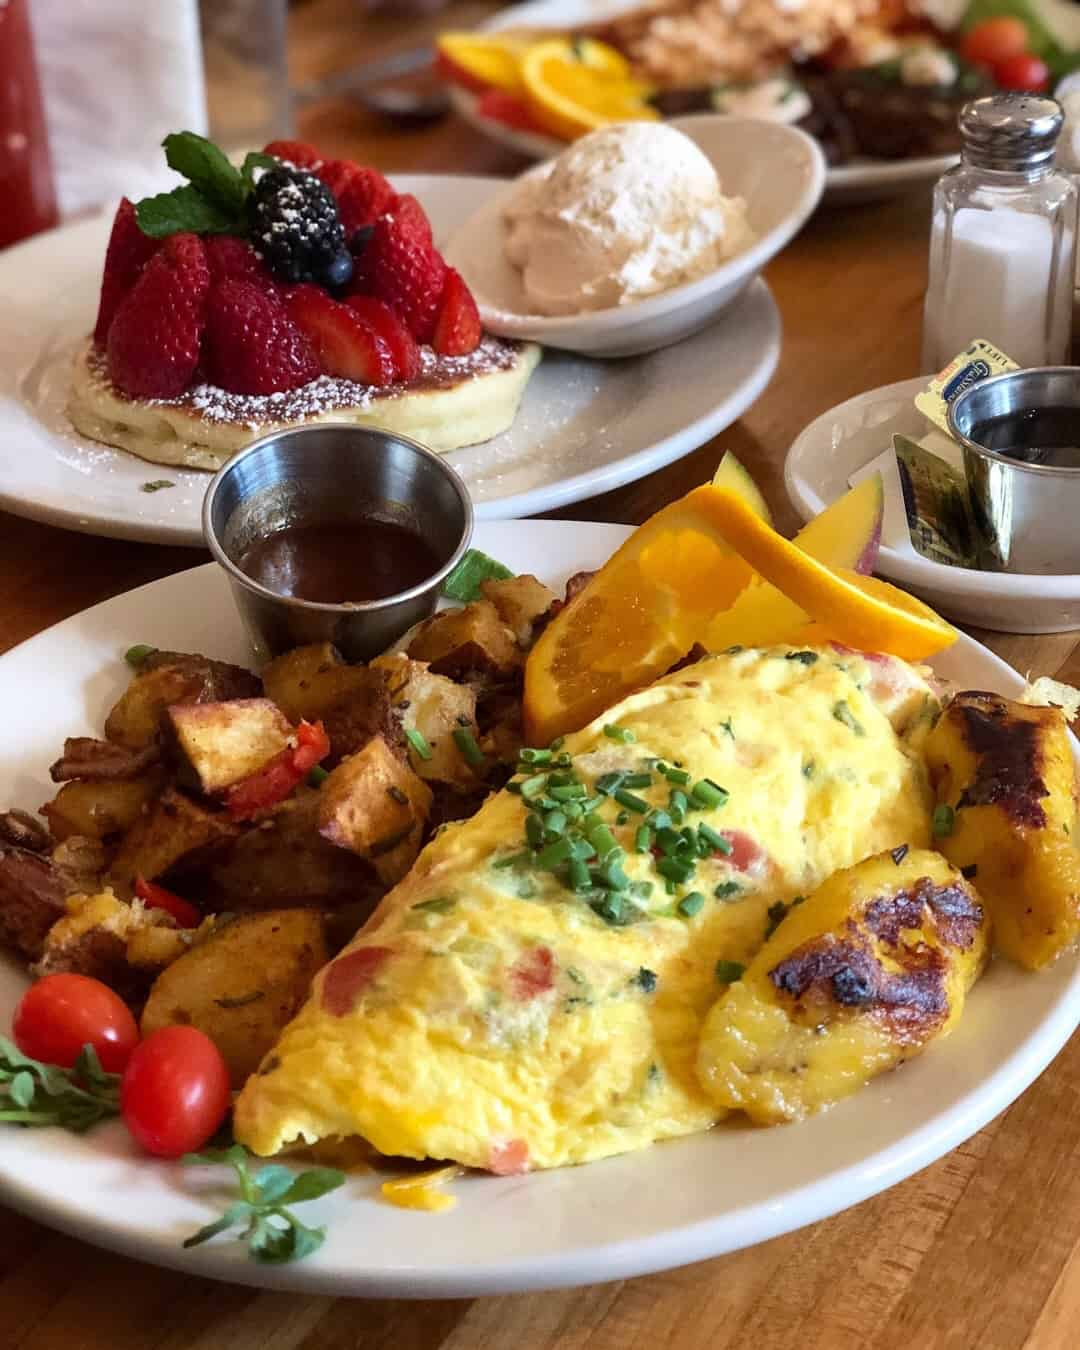 Loaded veggie omelet wit h a side of crispy potatoes and plantains with a pancake topped with berries and a side of whipped cream behind it